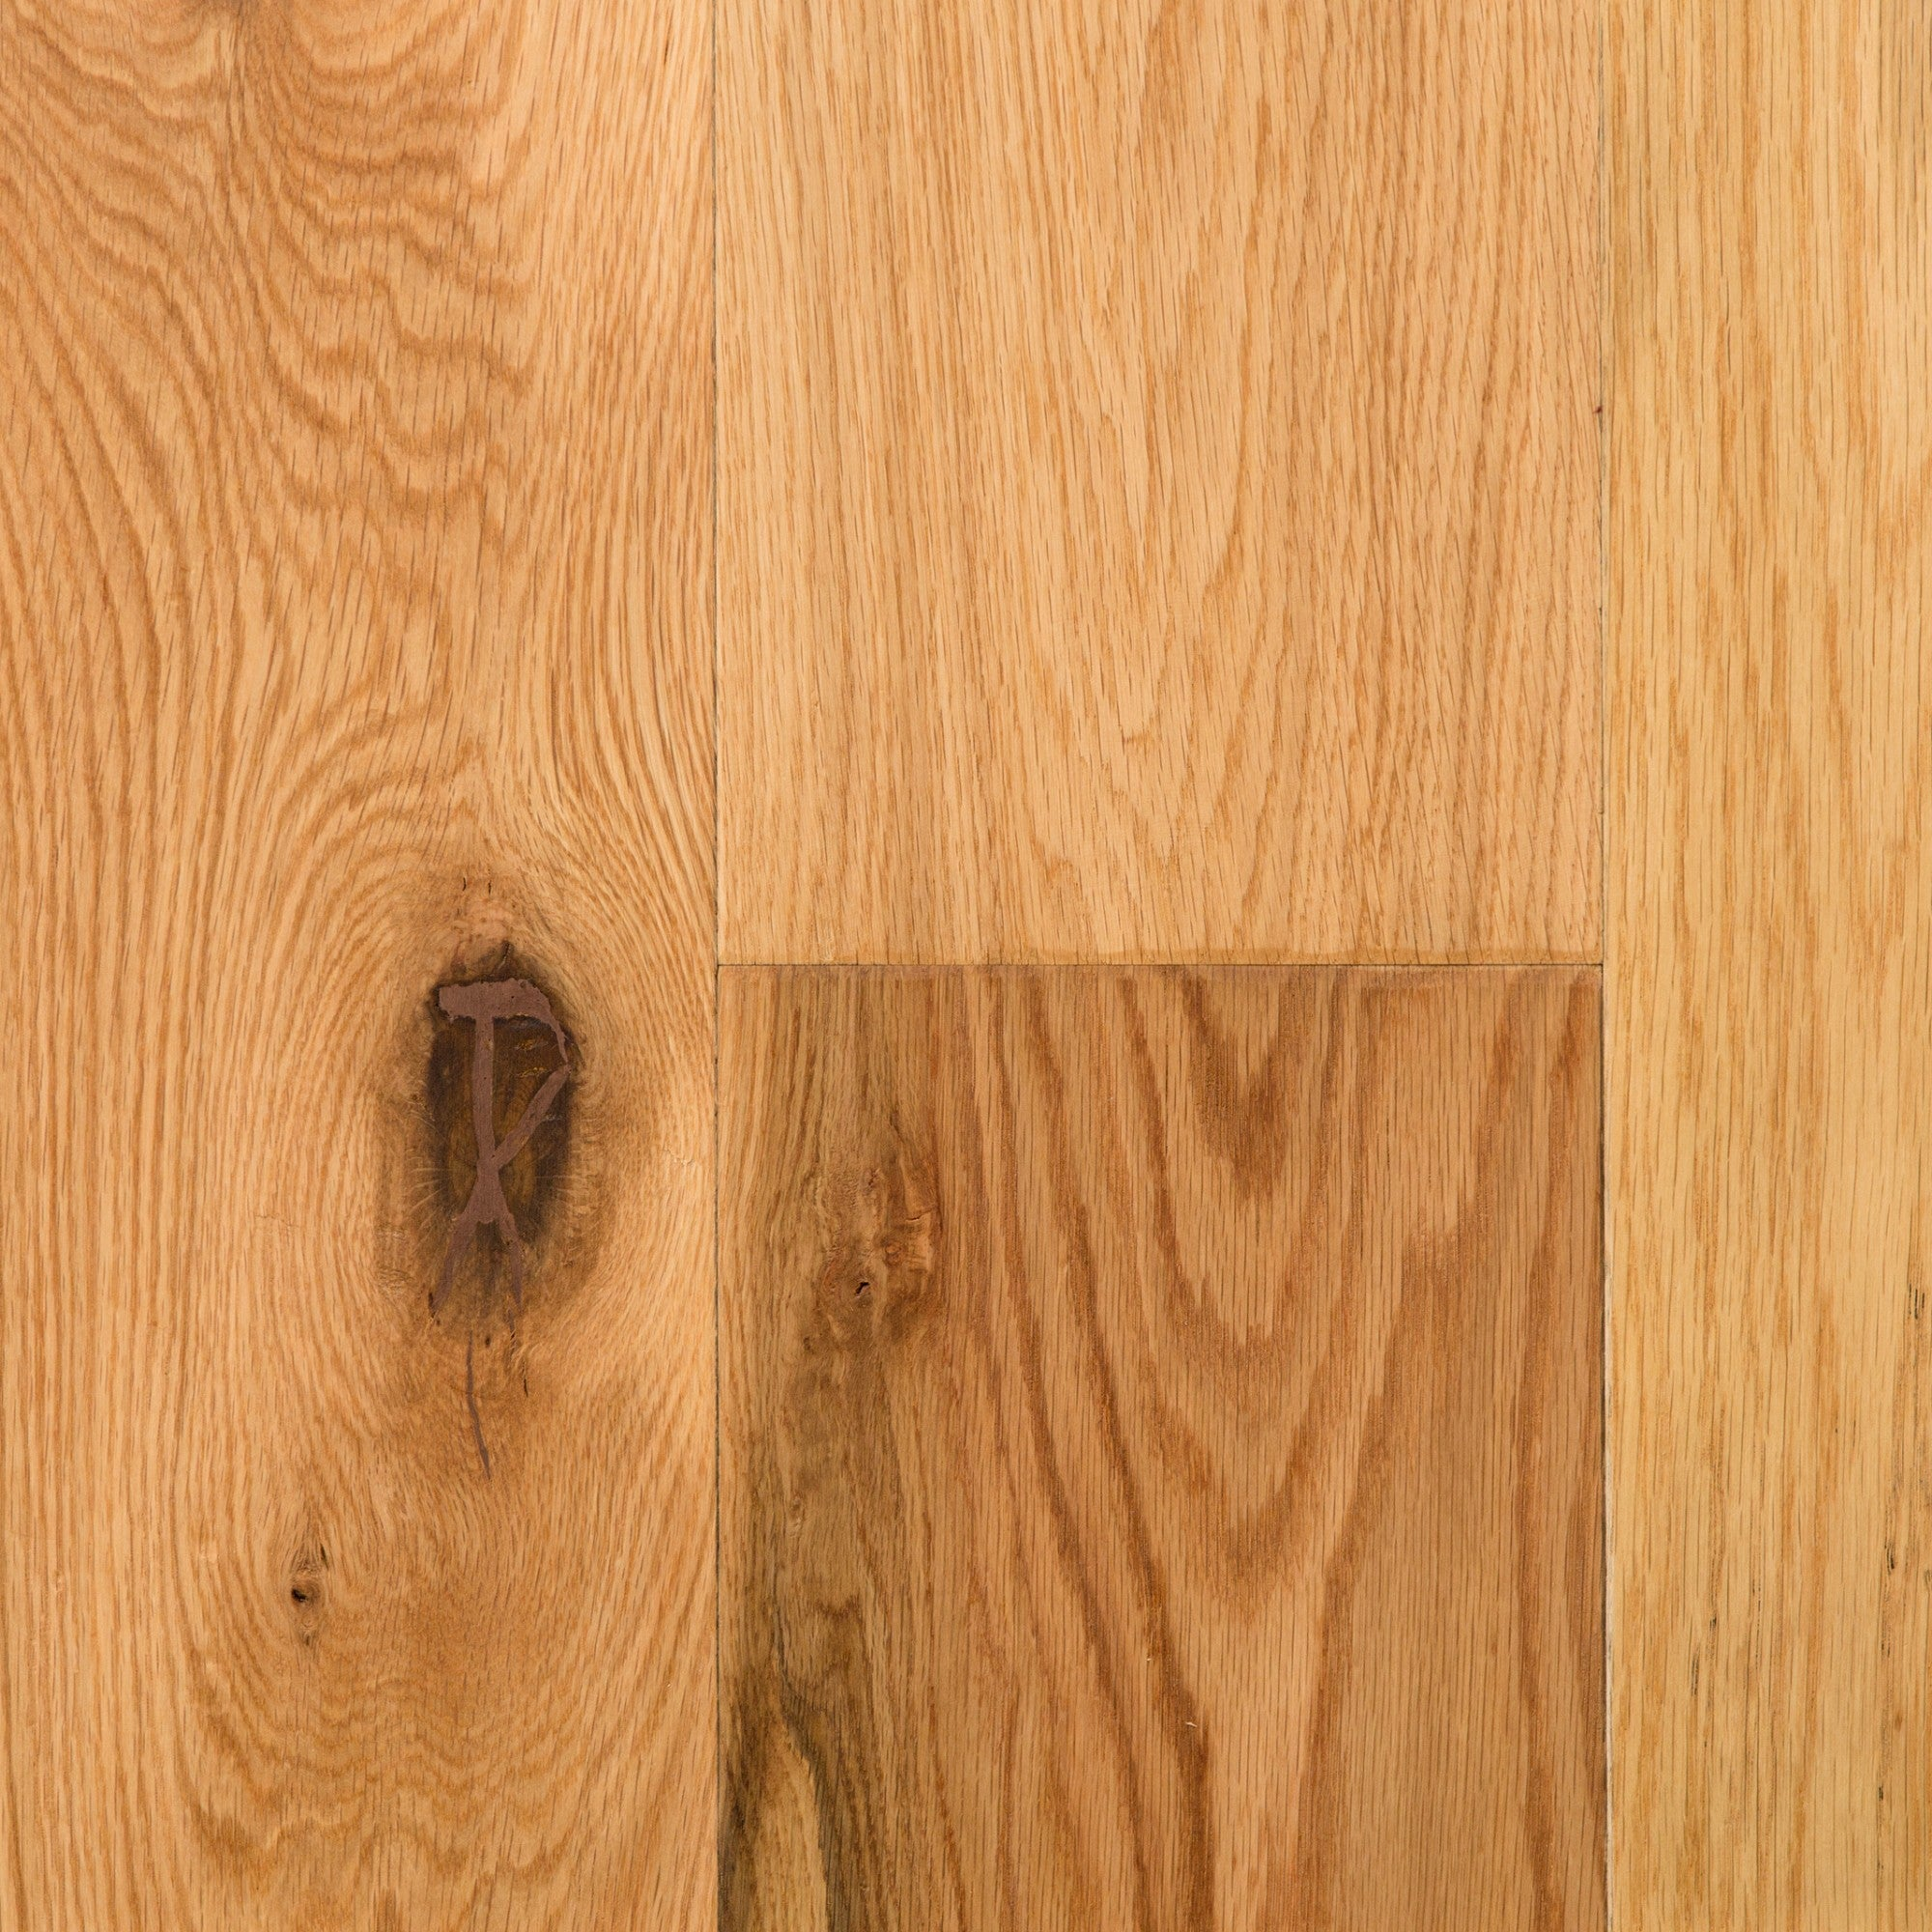 Handscraped - White Oak Natural